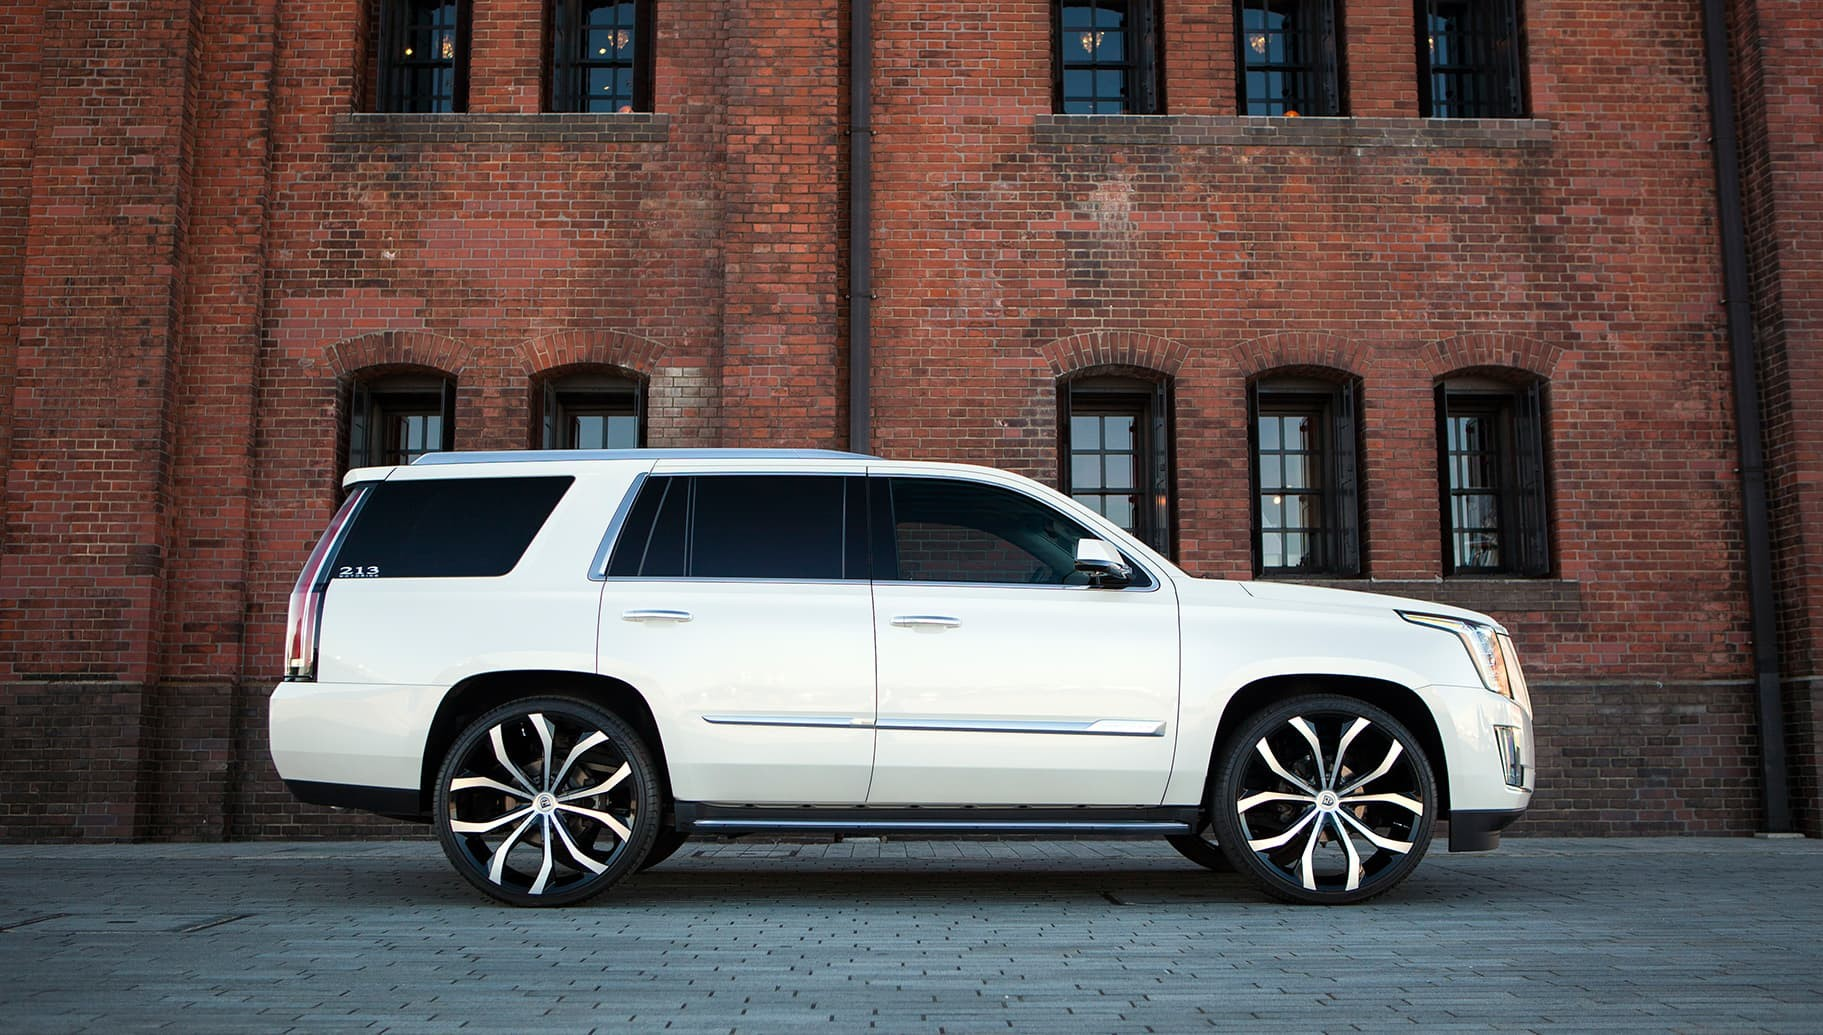 Machined and Black Lust on the Cadillac Escalade.